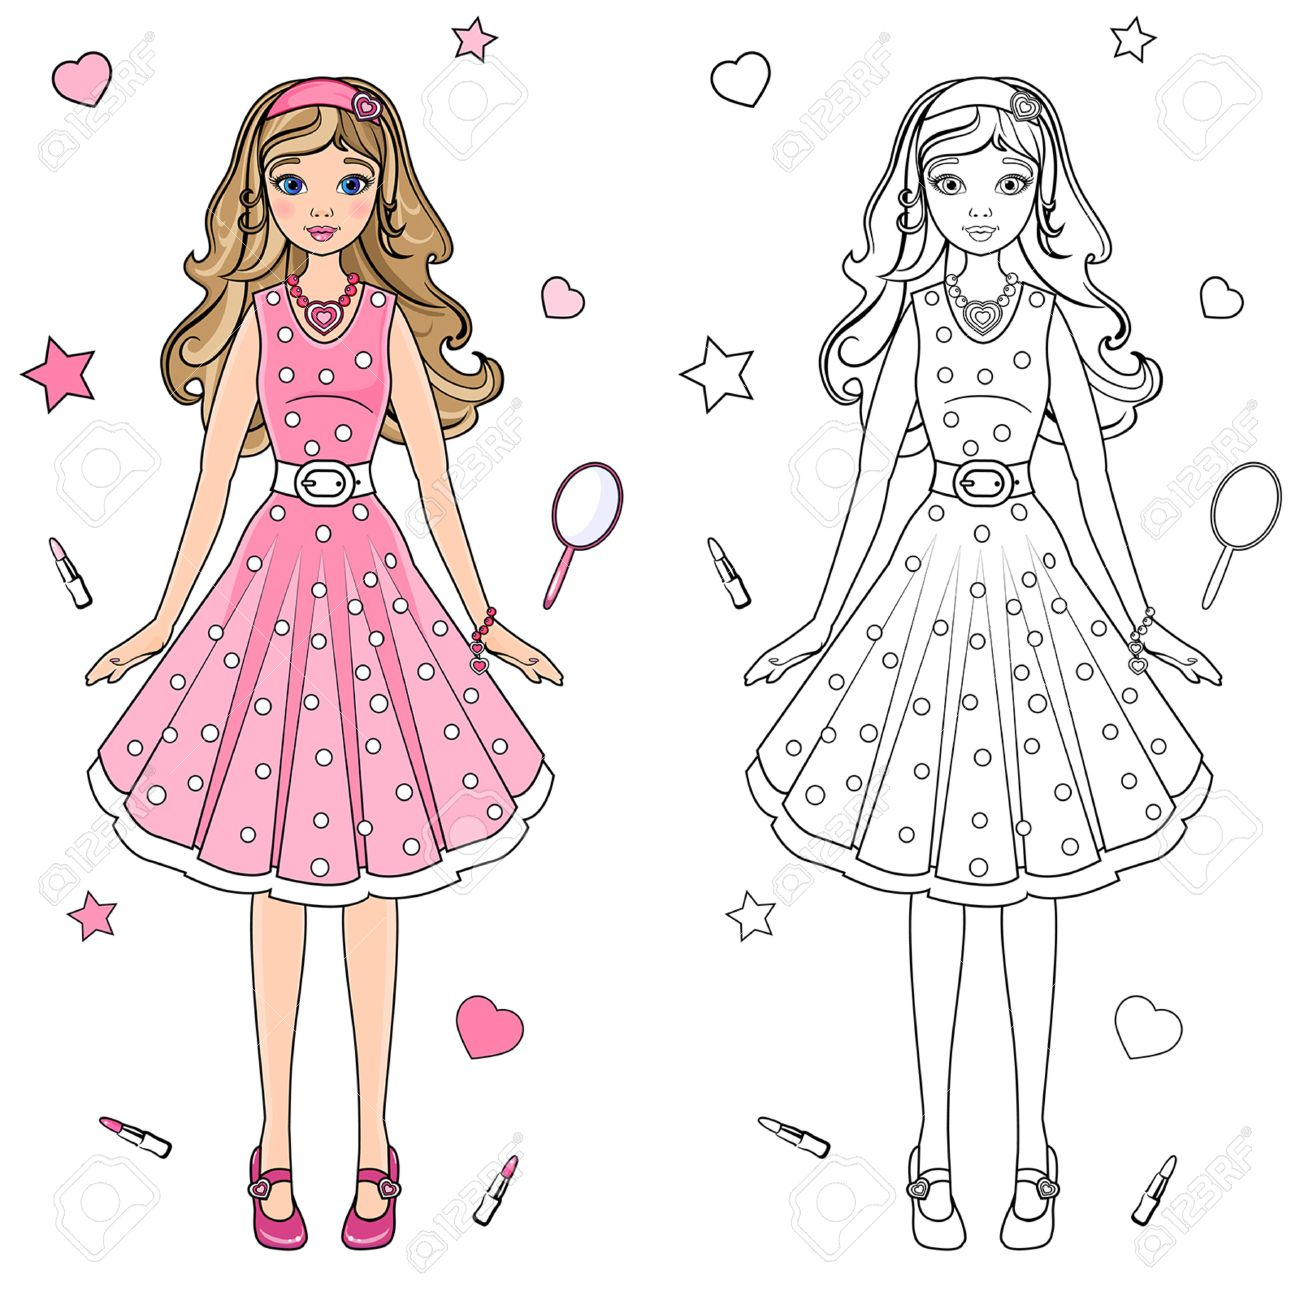 Coloring Book Doll In A Pink Dress Stock Vector